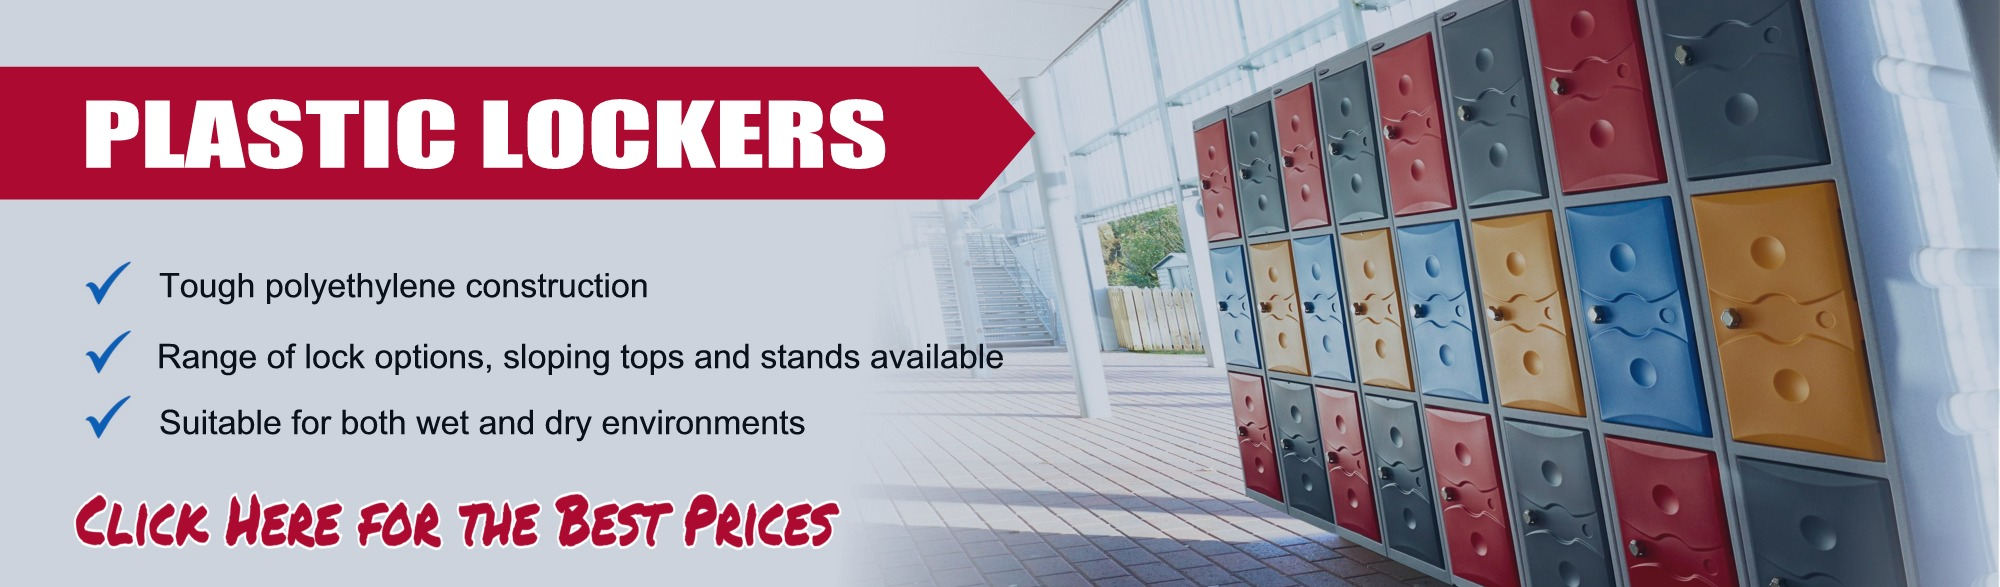 Plastic lockers from £59.99